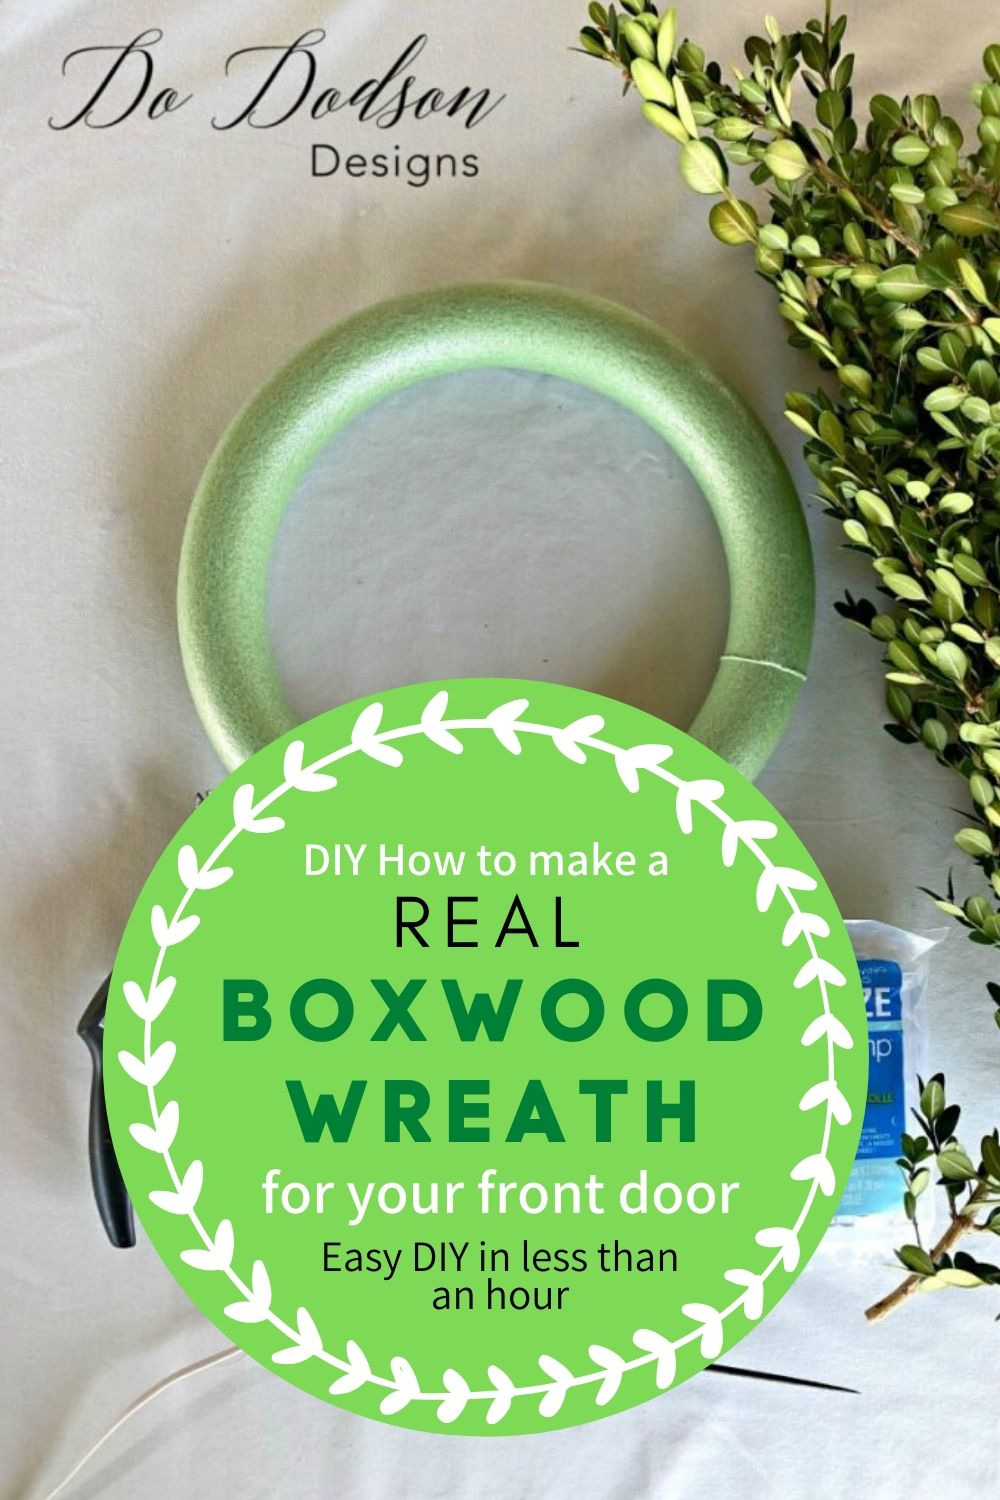 How To Make A Real Boxwood Wreath In Less Than An Hour